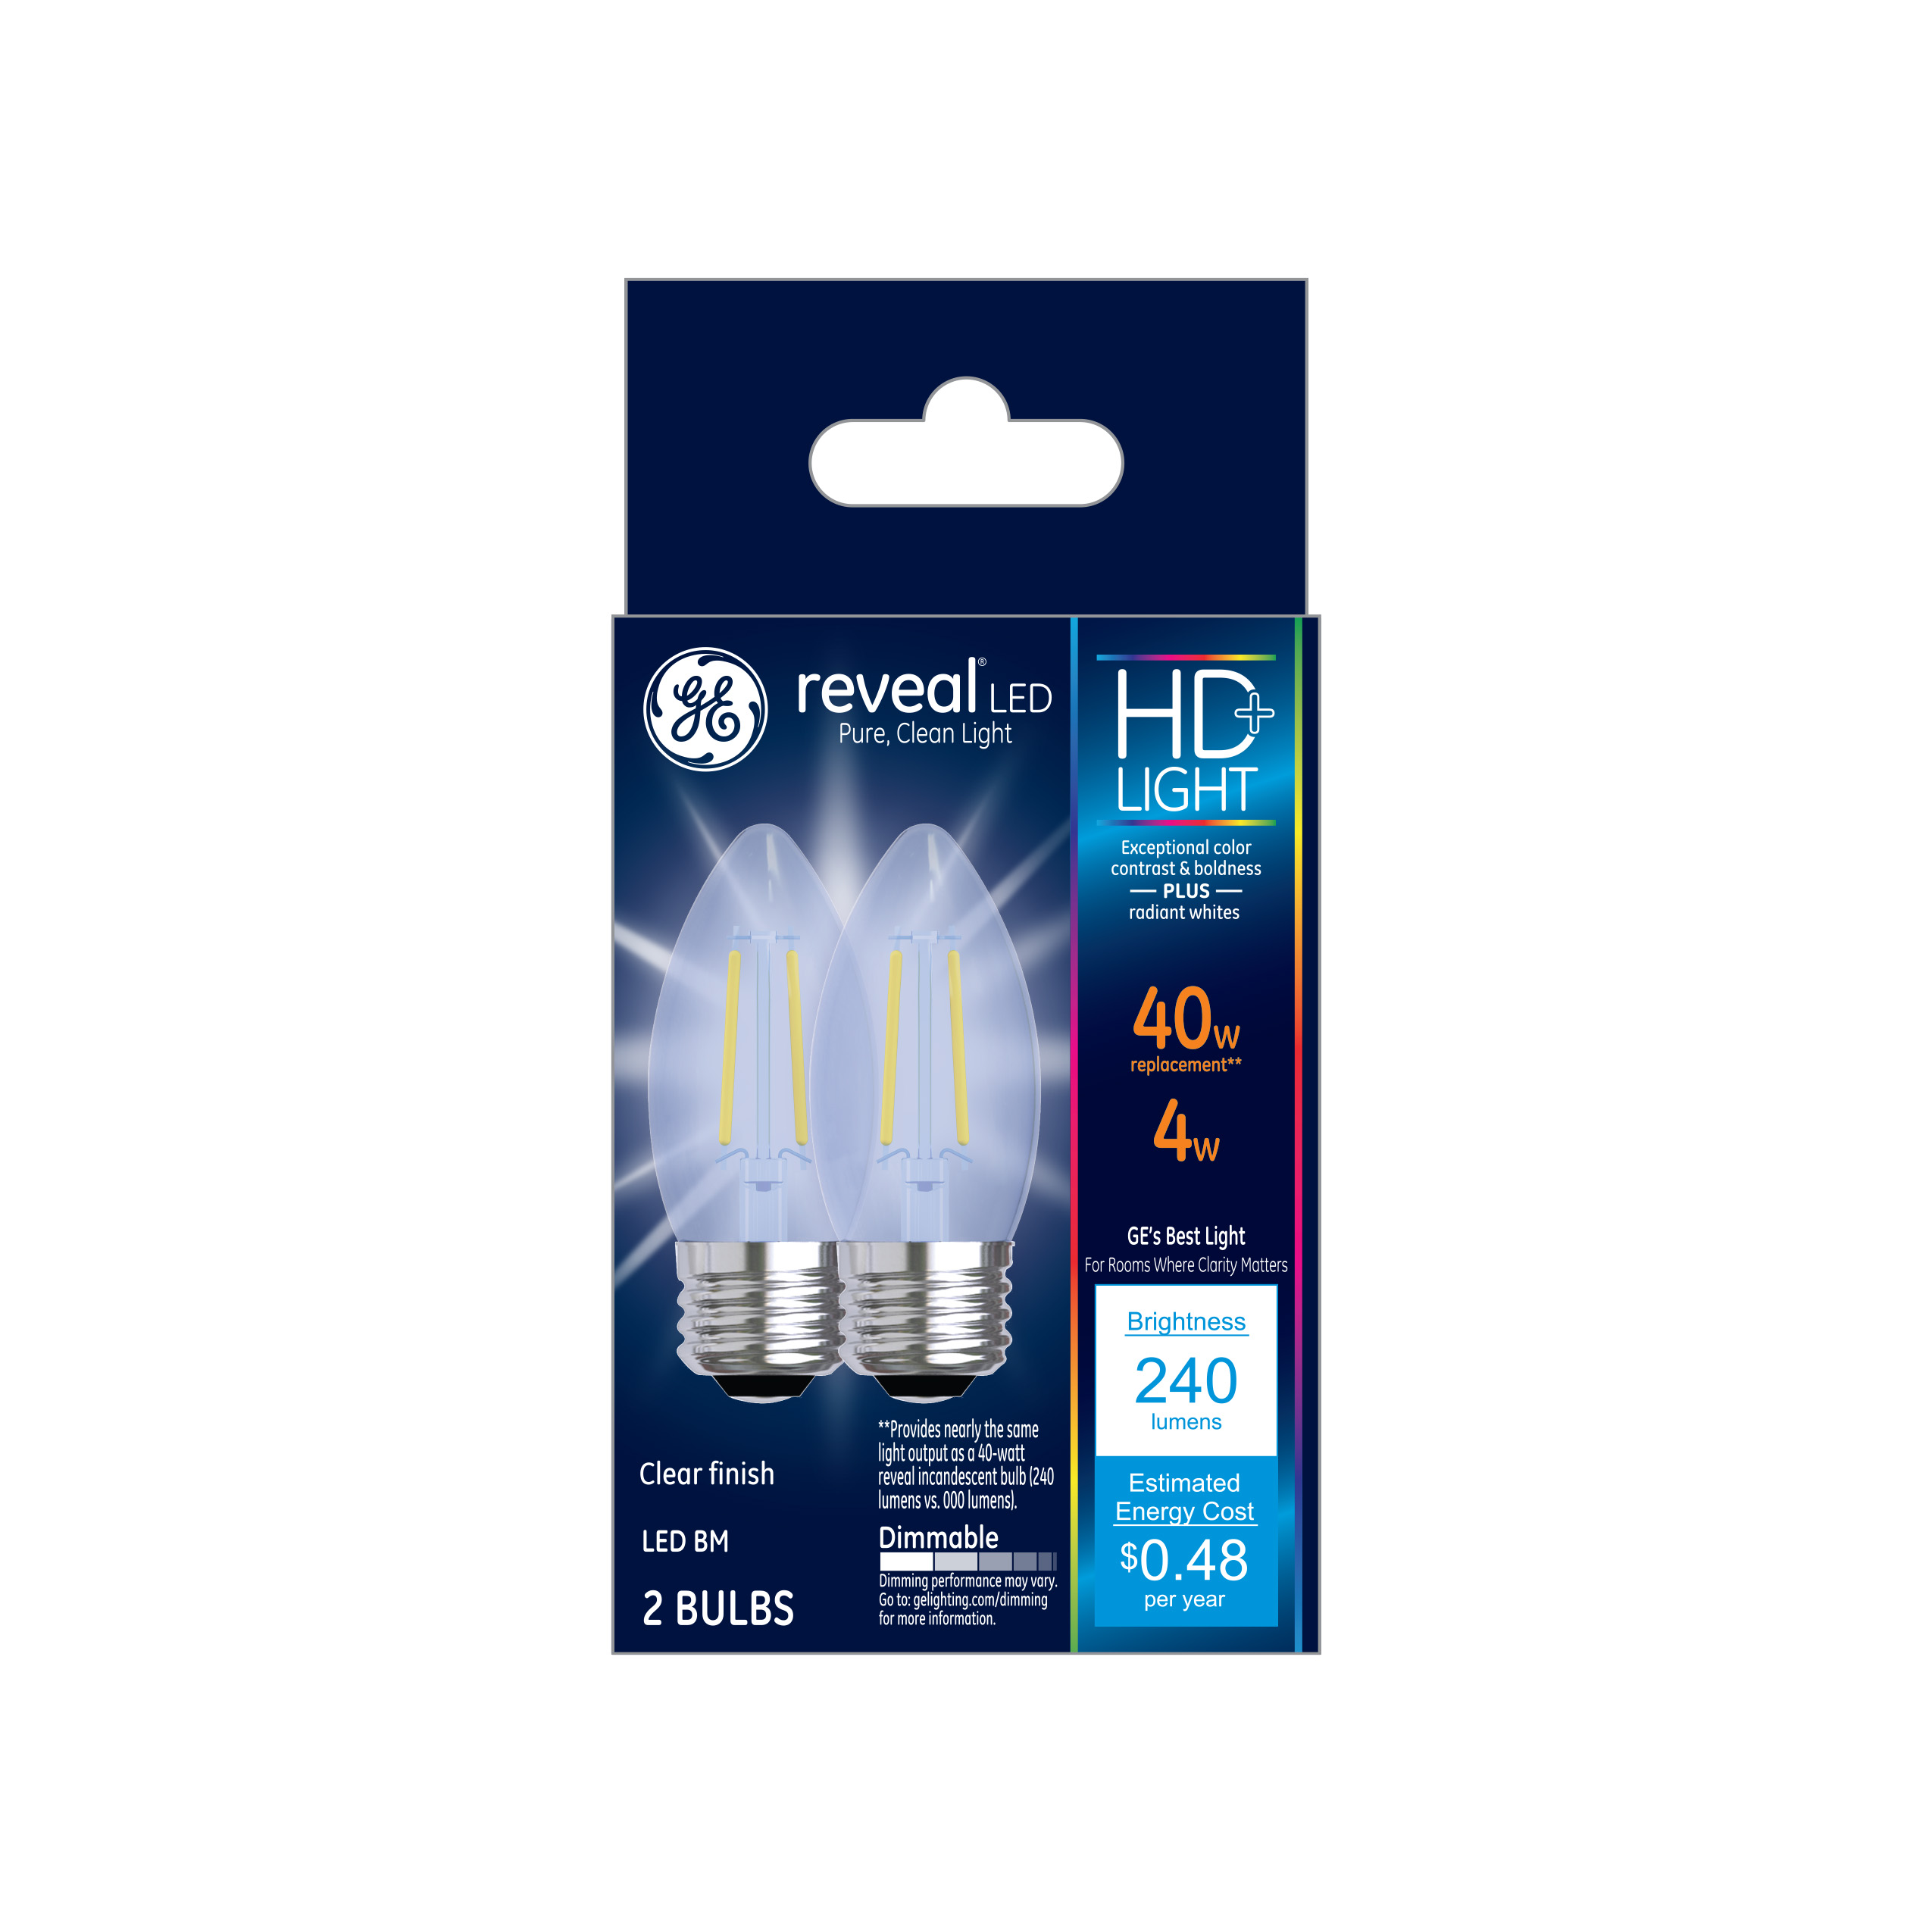 GE LED 4W HD Reveal Decorative Clear Finish, Medium Base, Dimmable, 2pk Light Bulbs